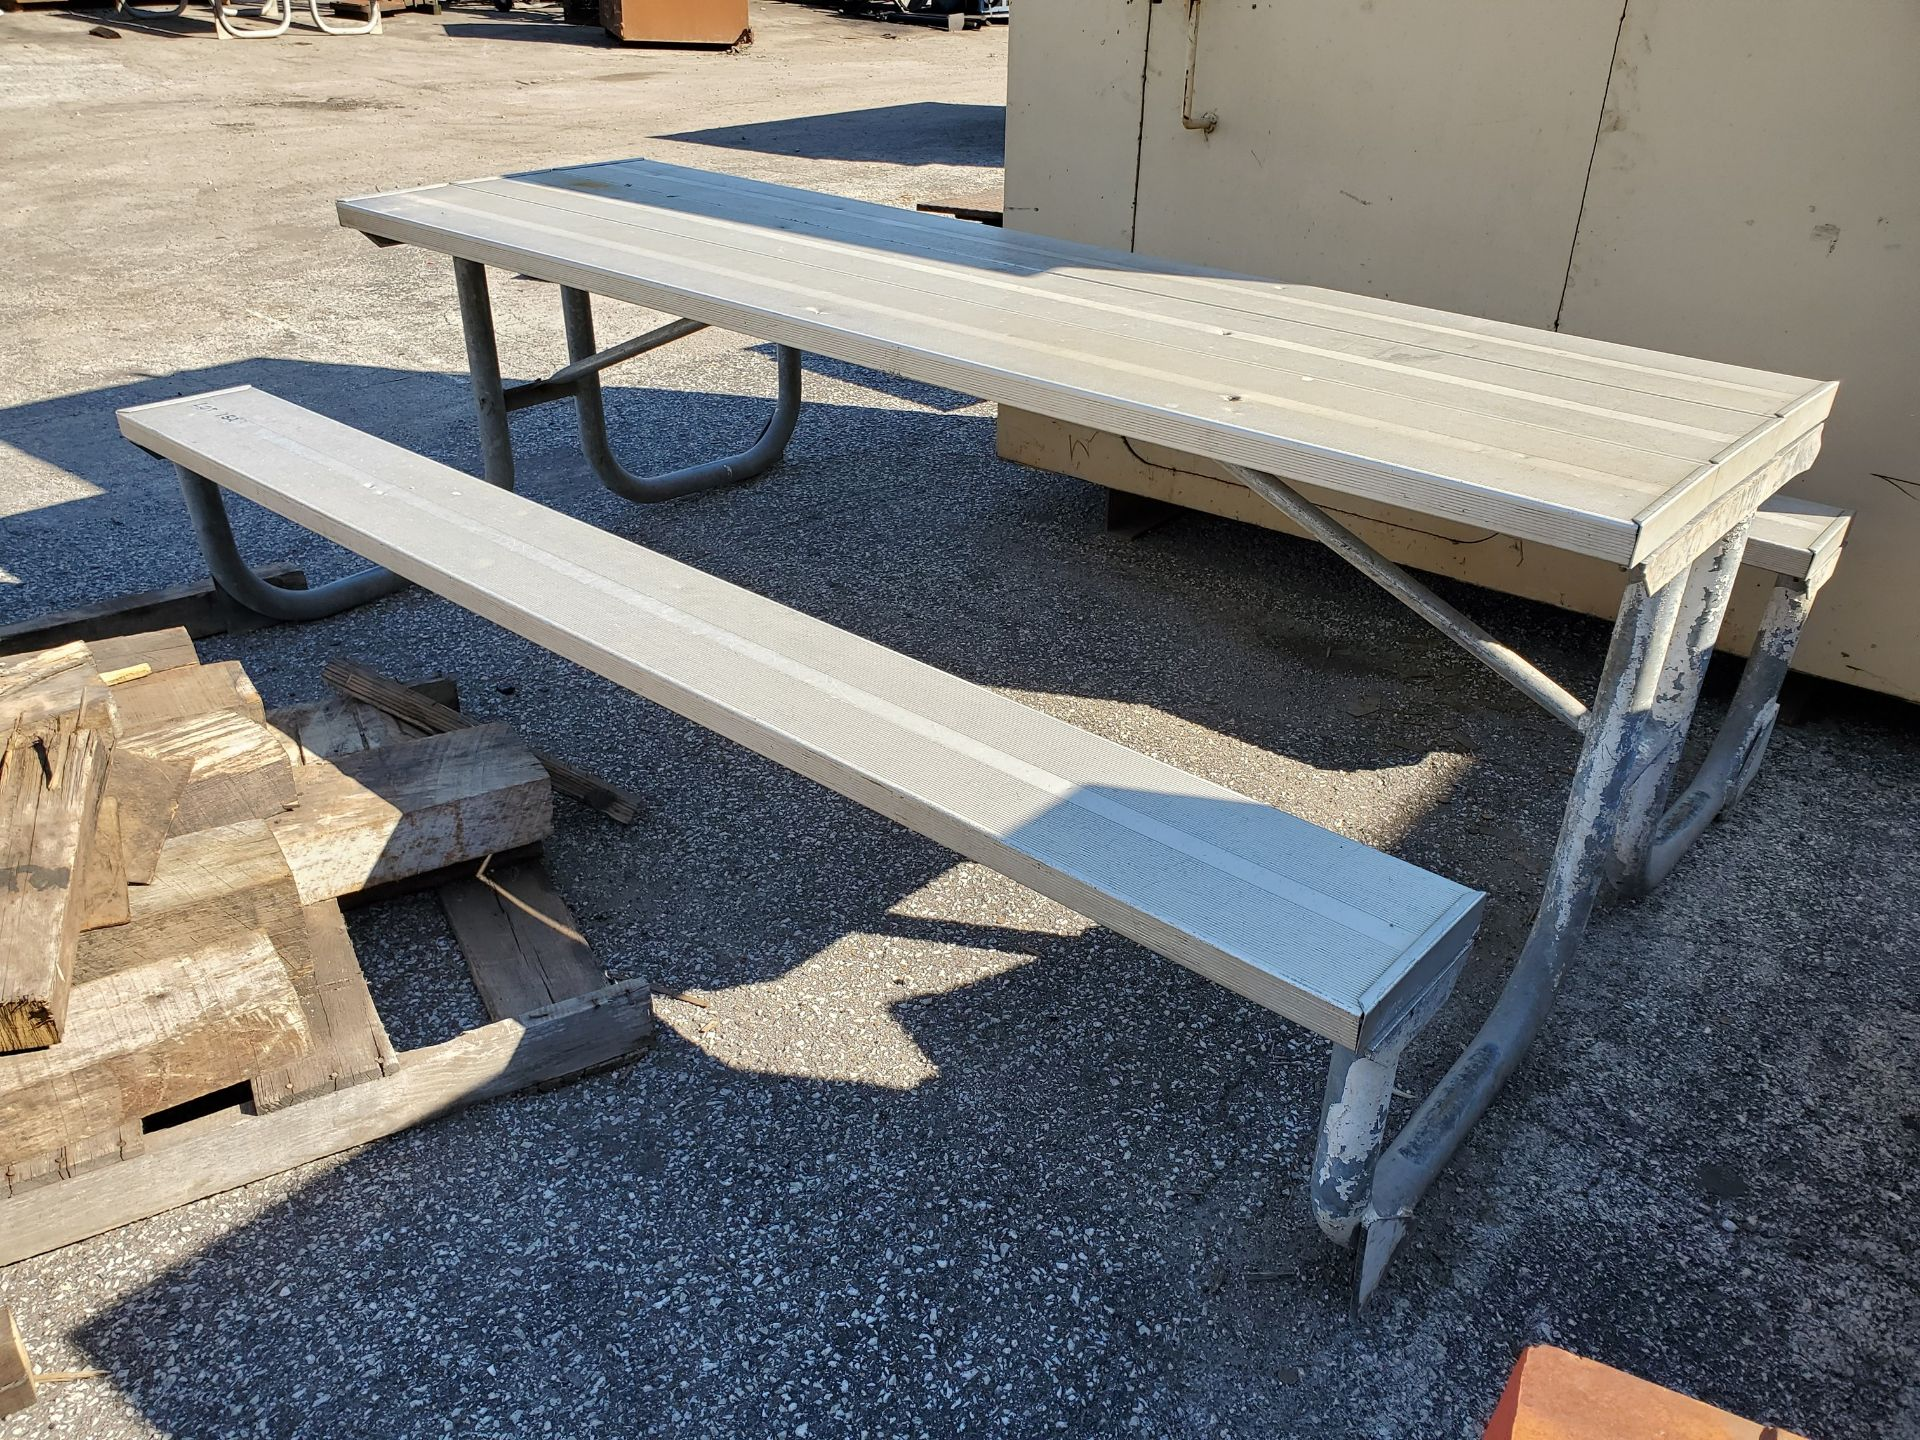 Lot 152 - 8' ALUMINUM PICNIC TABLE